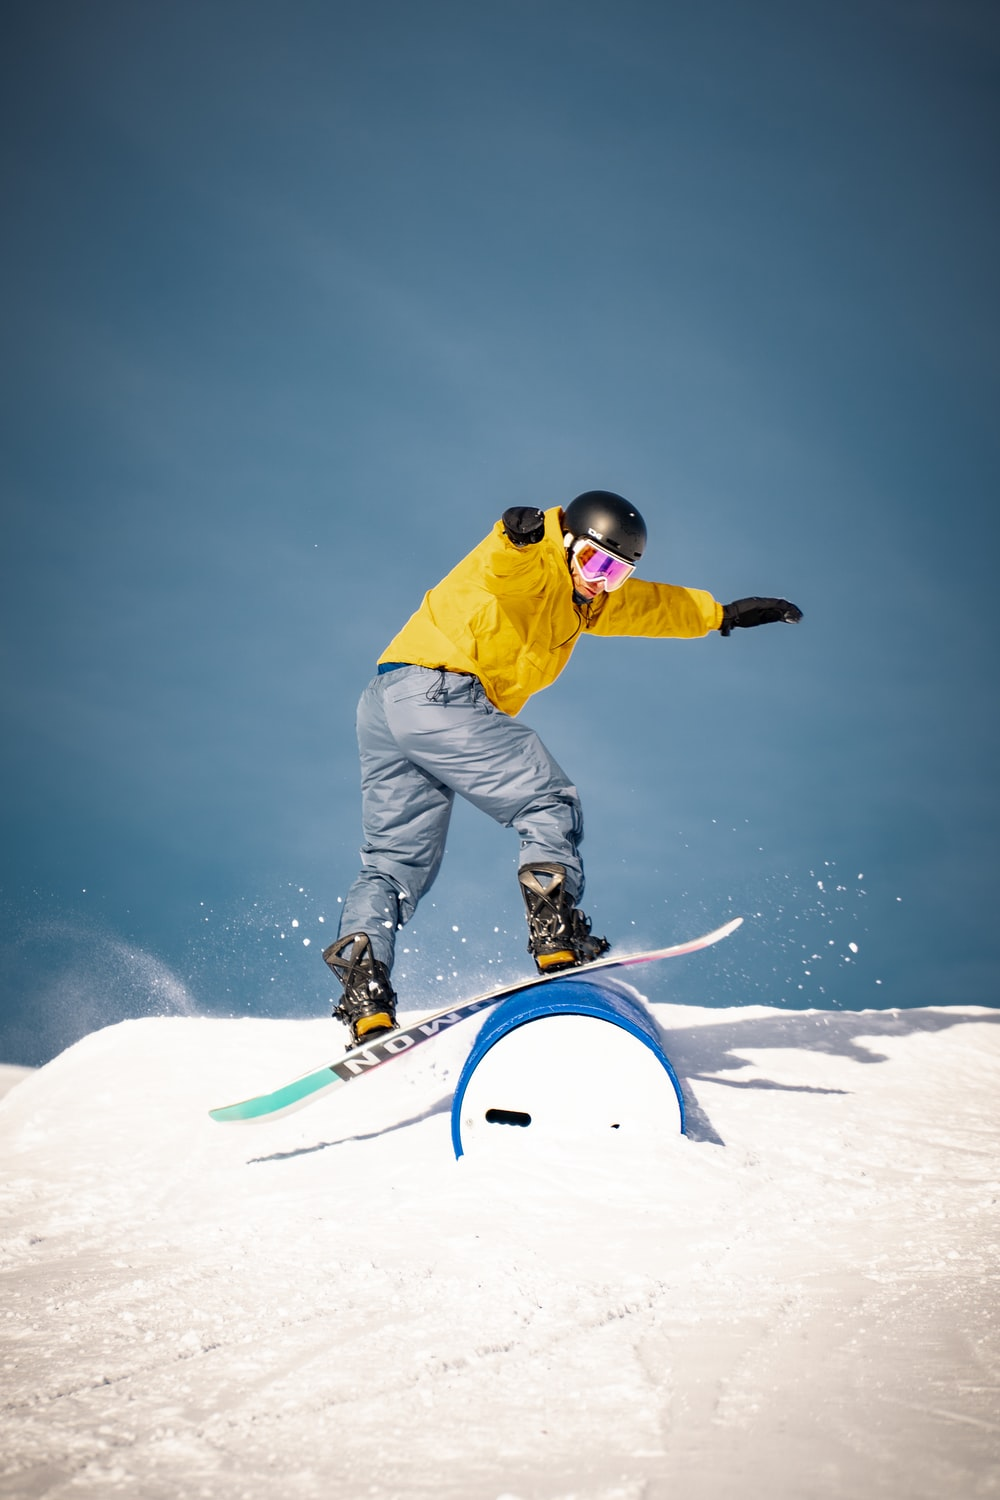 man in yellow jacket and gray pants riding on blue snowboard during daytime